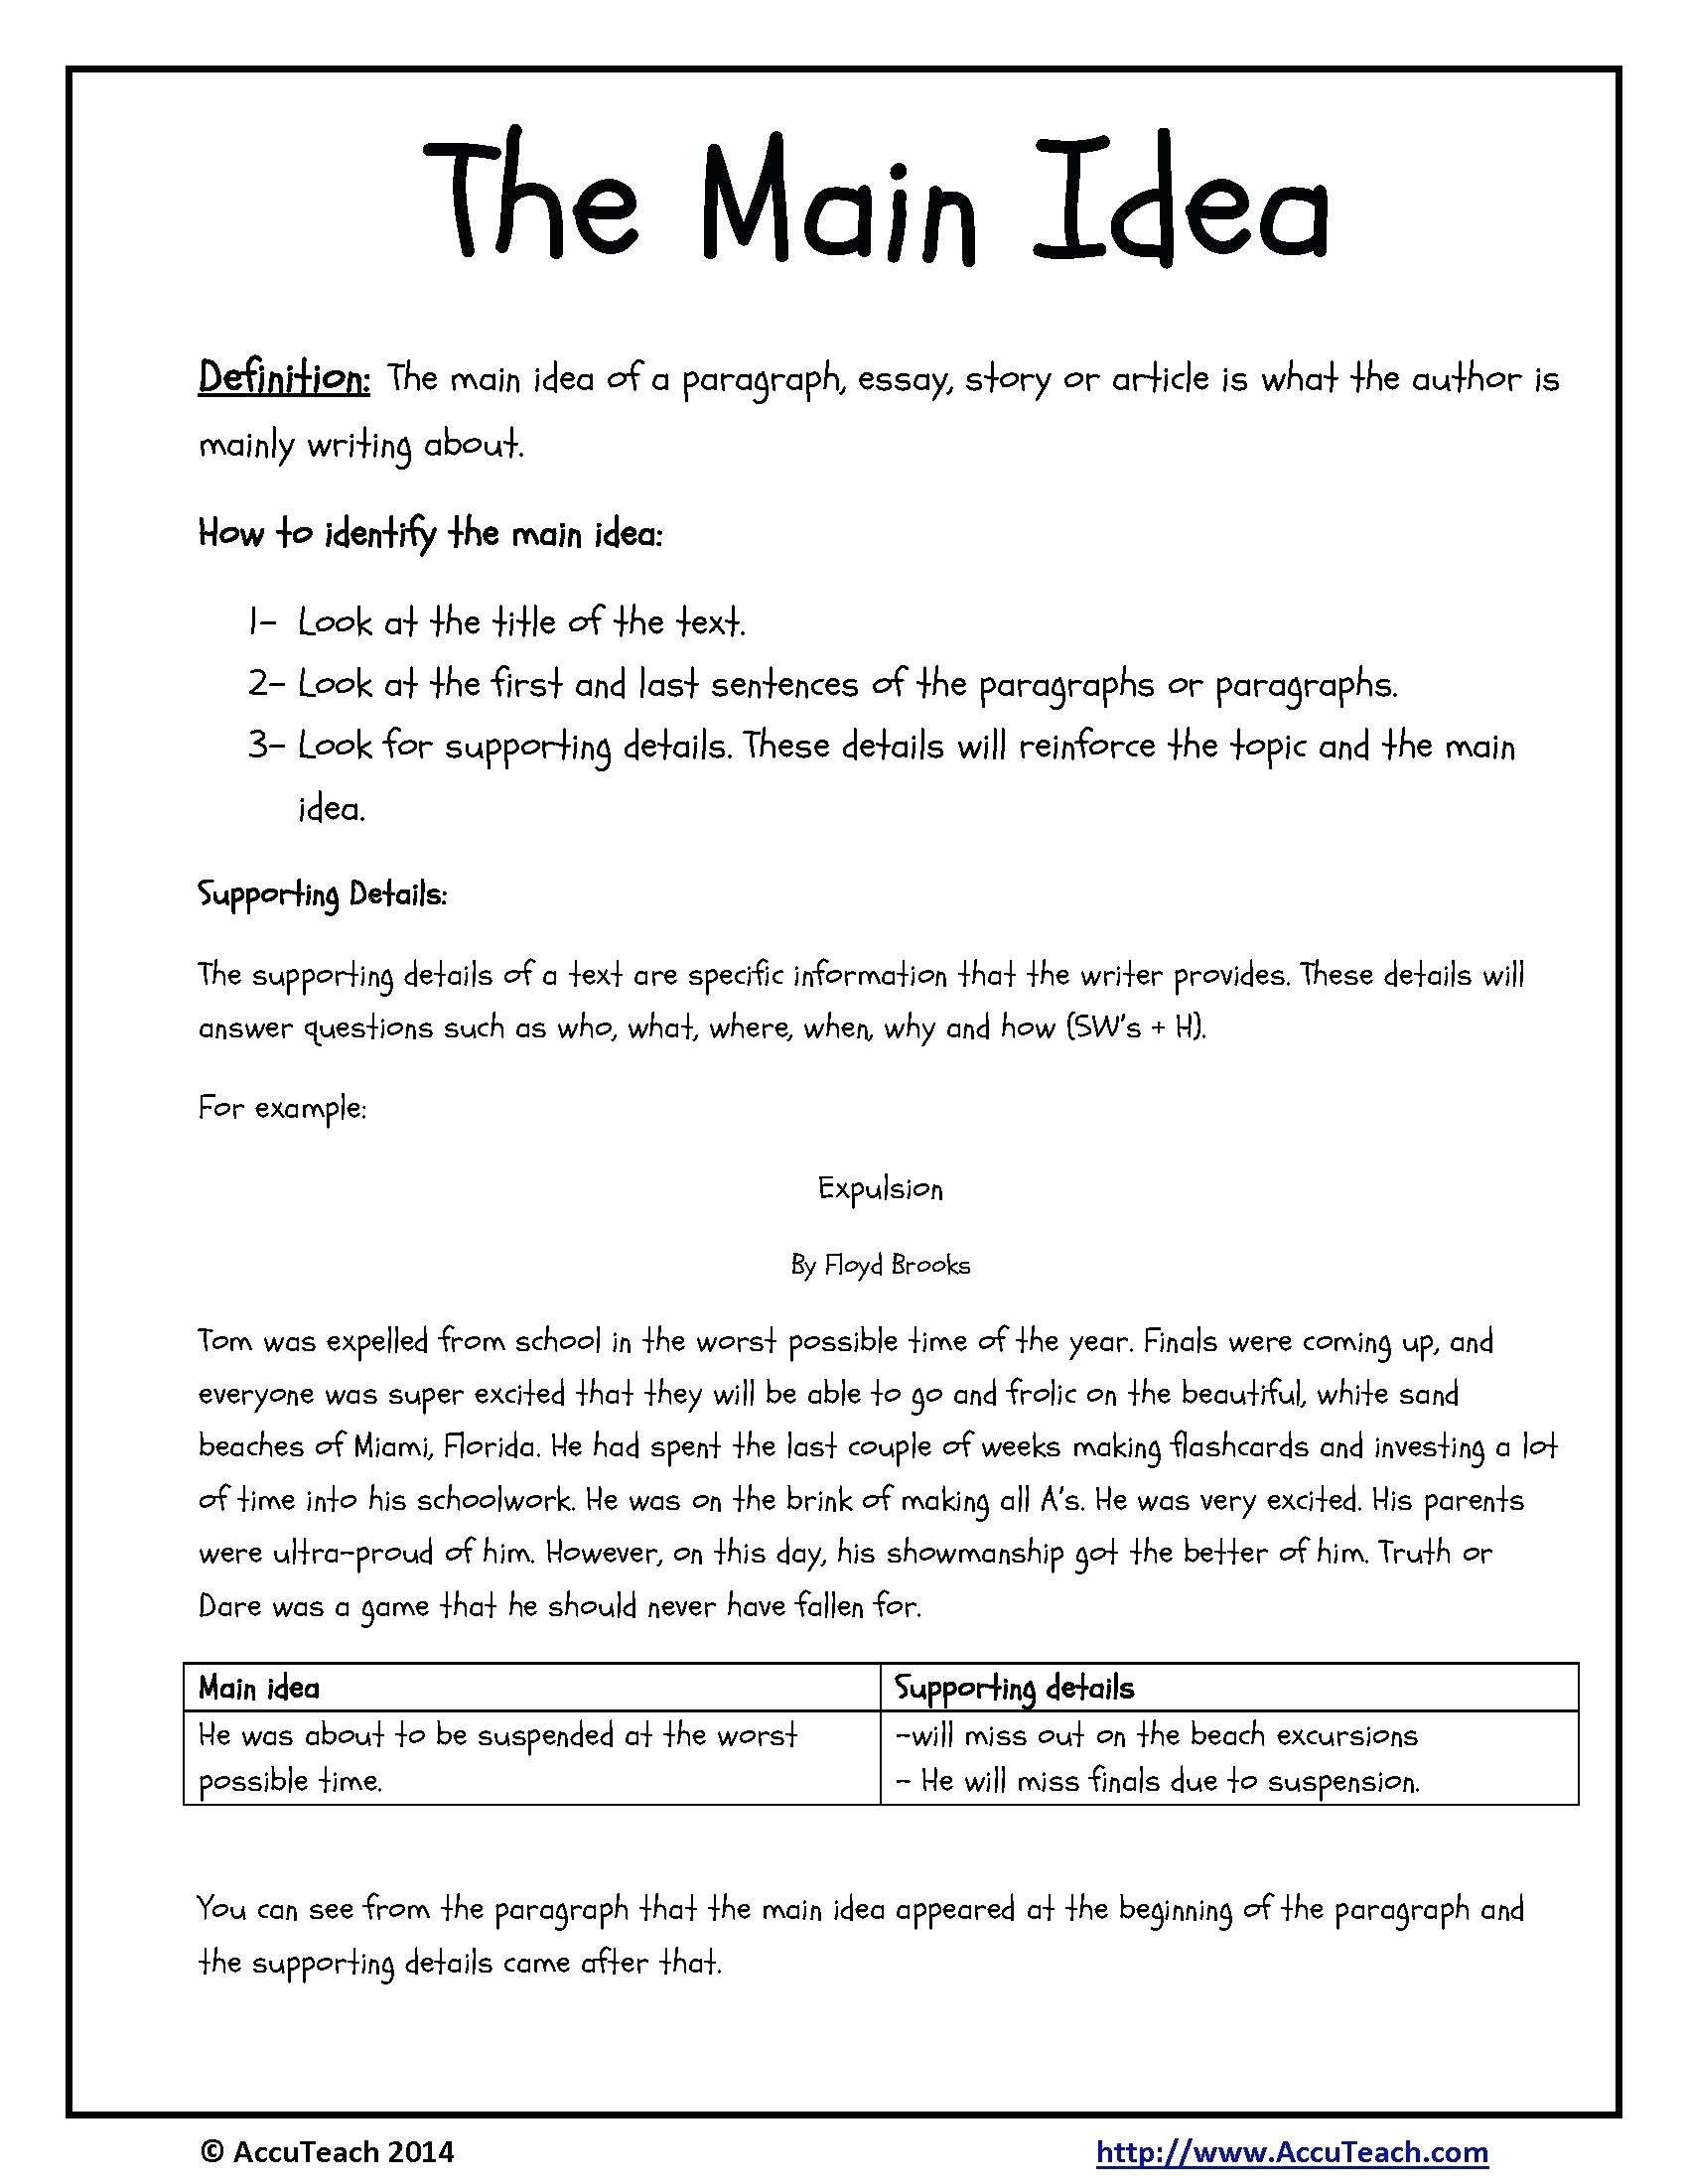 10 Elegant How To Find The Main Idea Of A Story kindergarten worksheet multiple choice main idea worksheets free 6 2020